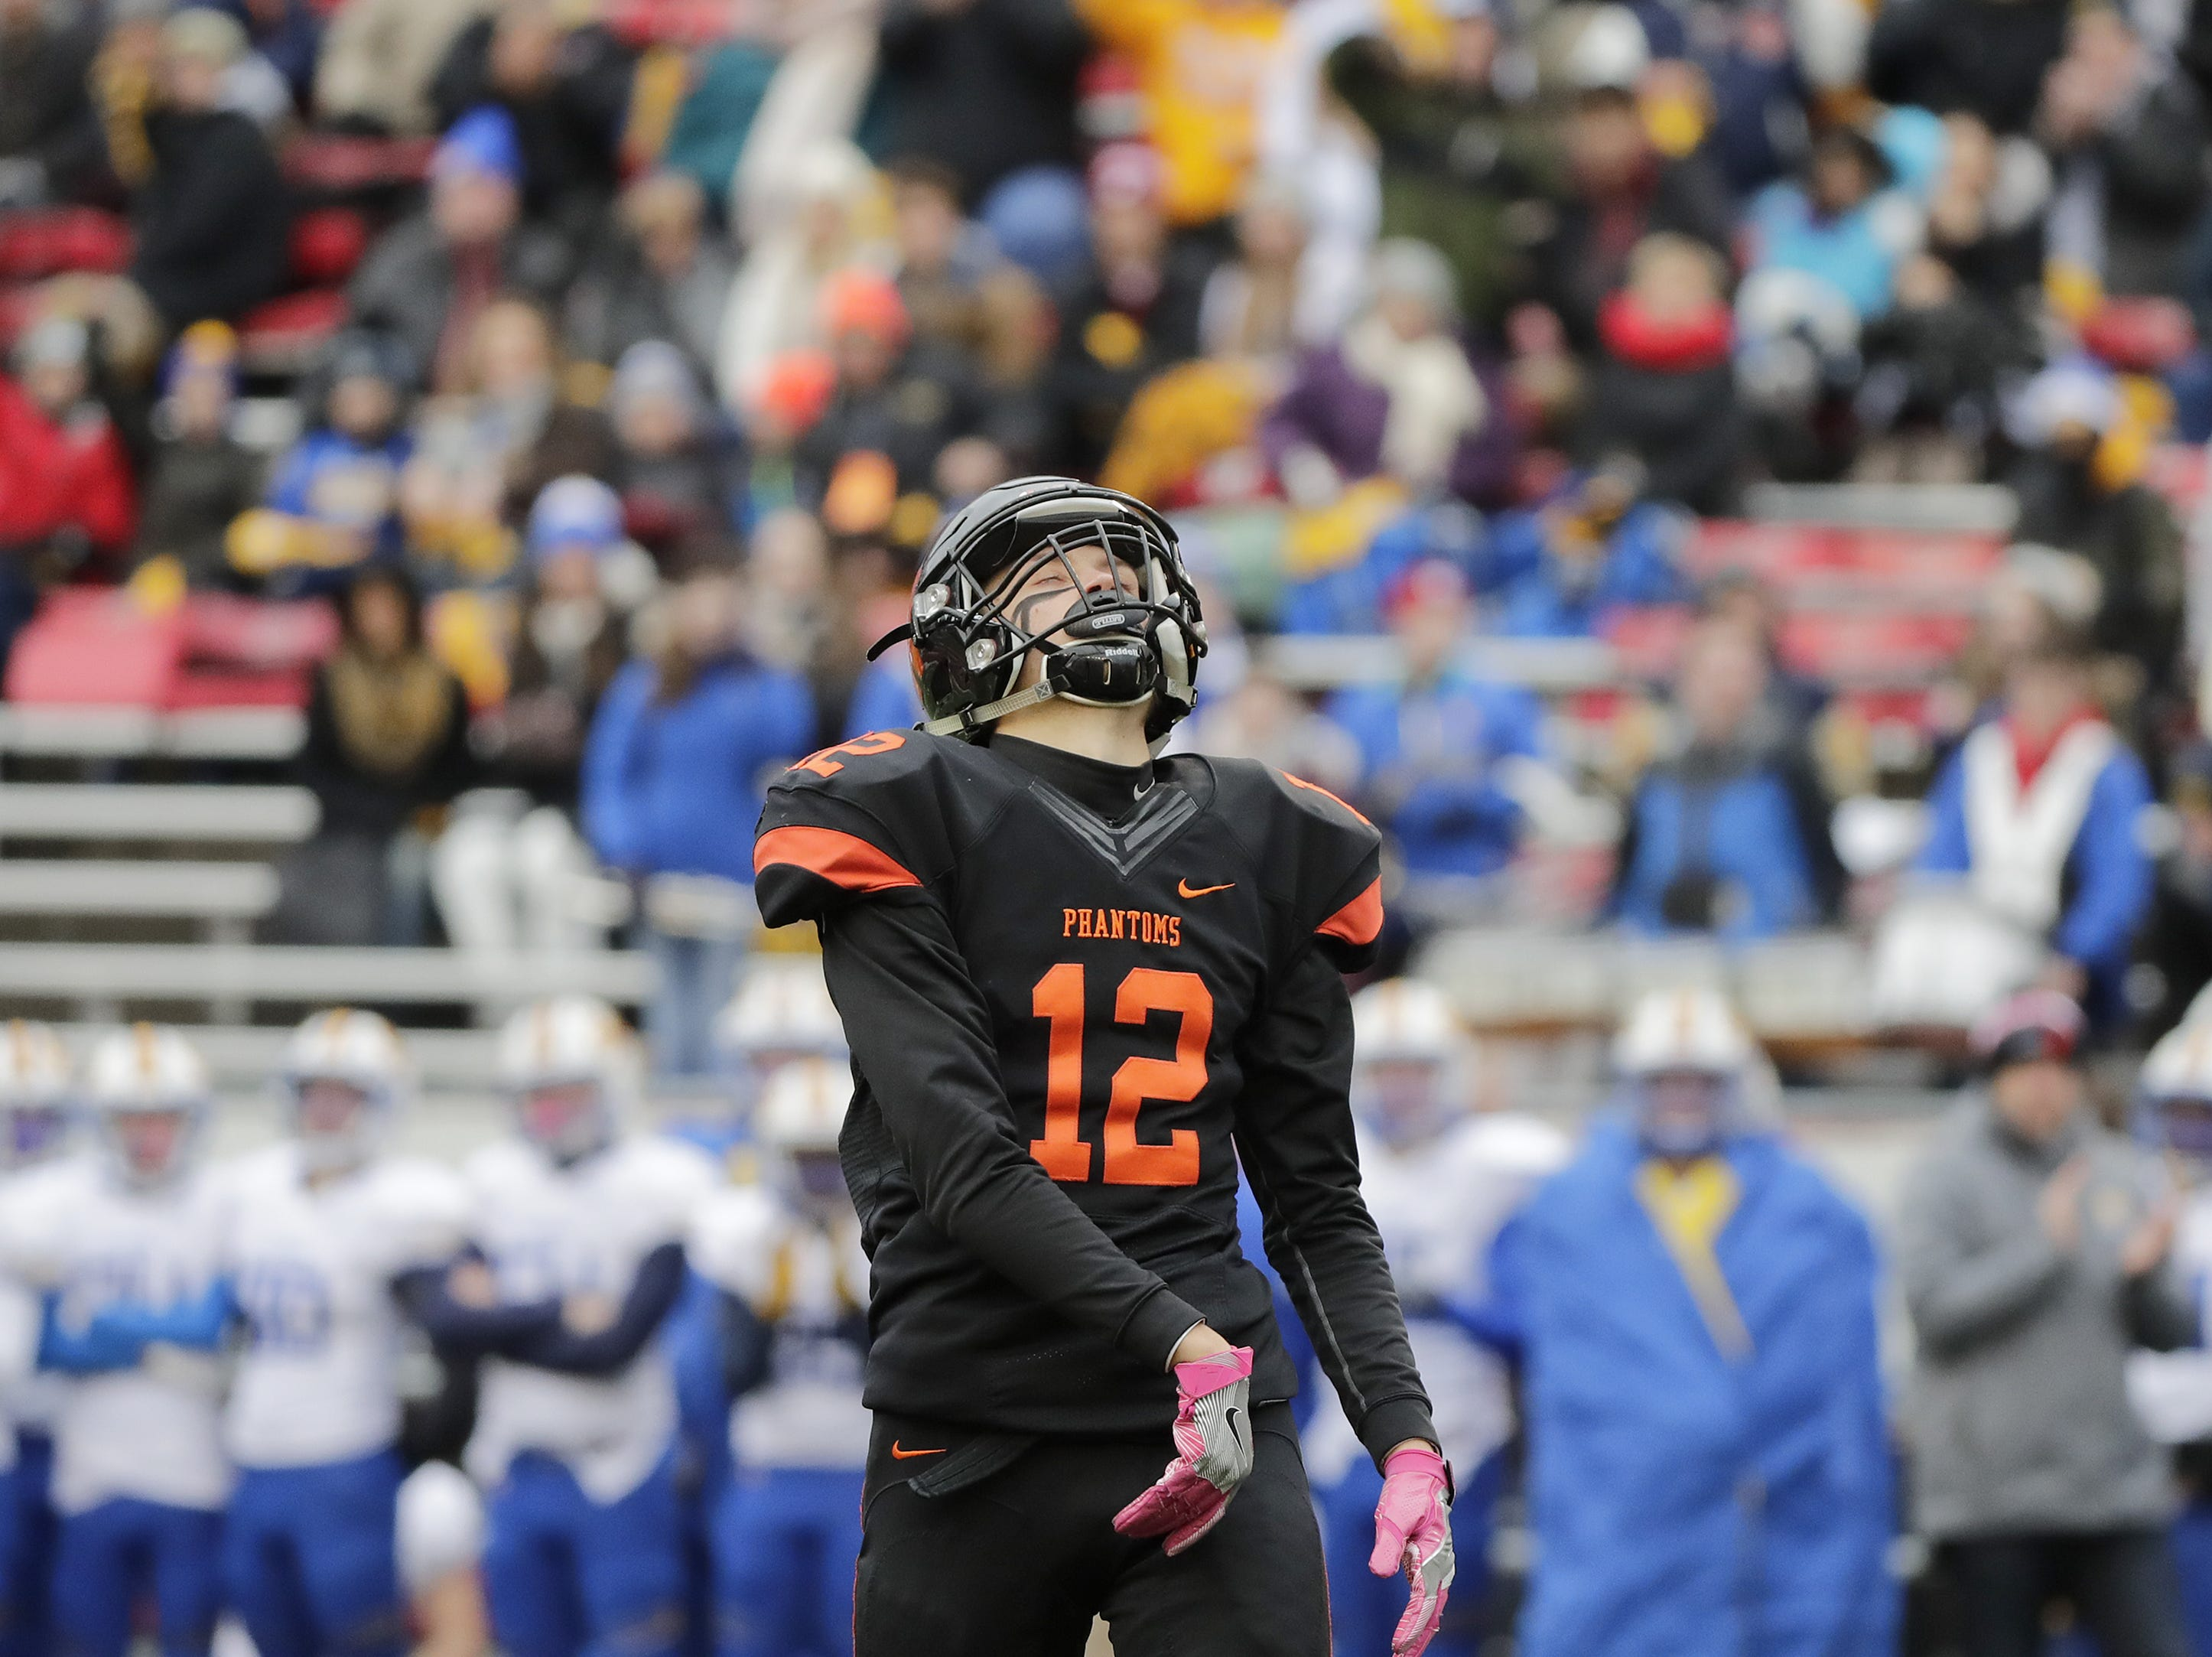 West De Pere's John Edinger (12) reacts after being flagged for pass interference against Catholic Memorial in the WIAA Division 3 championship game at Camp Randall Stadium on Friday, November 16, 2018 in Madison, Wis.